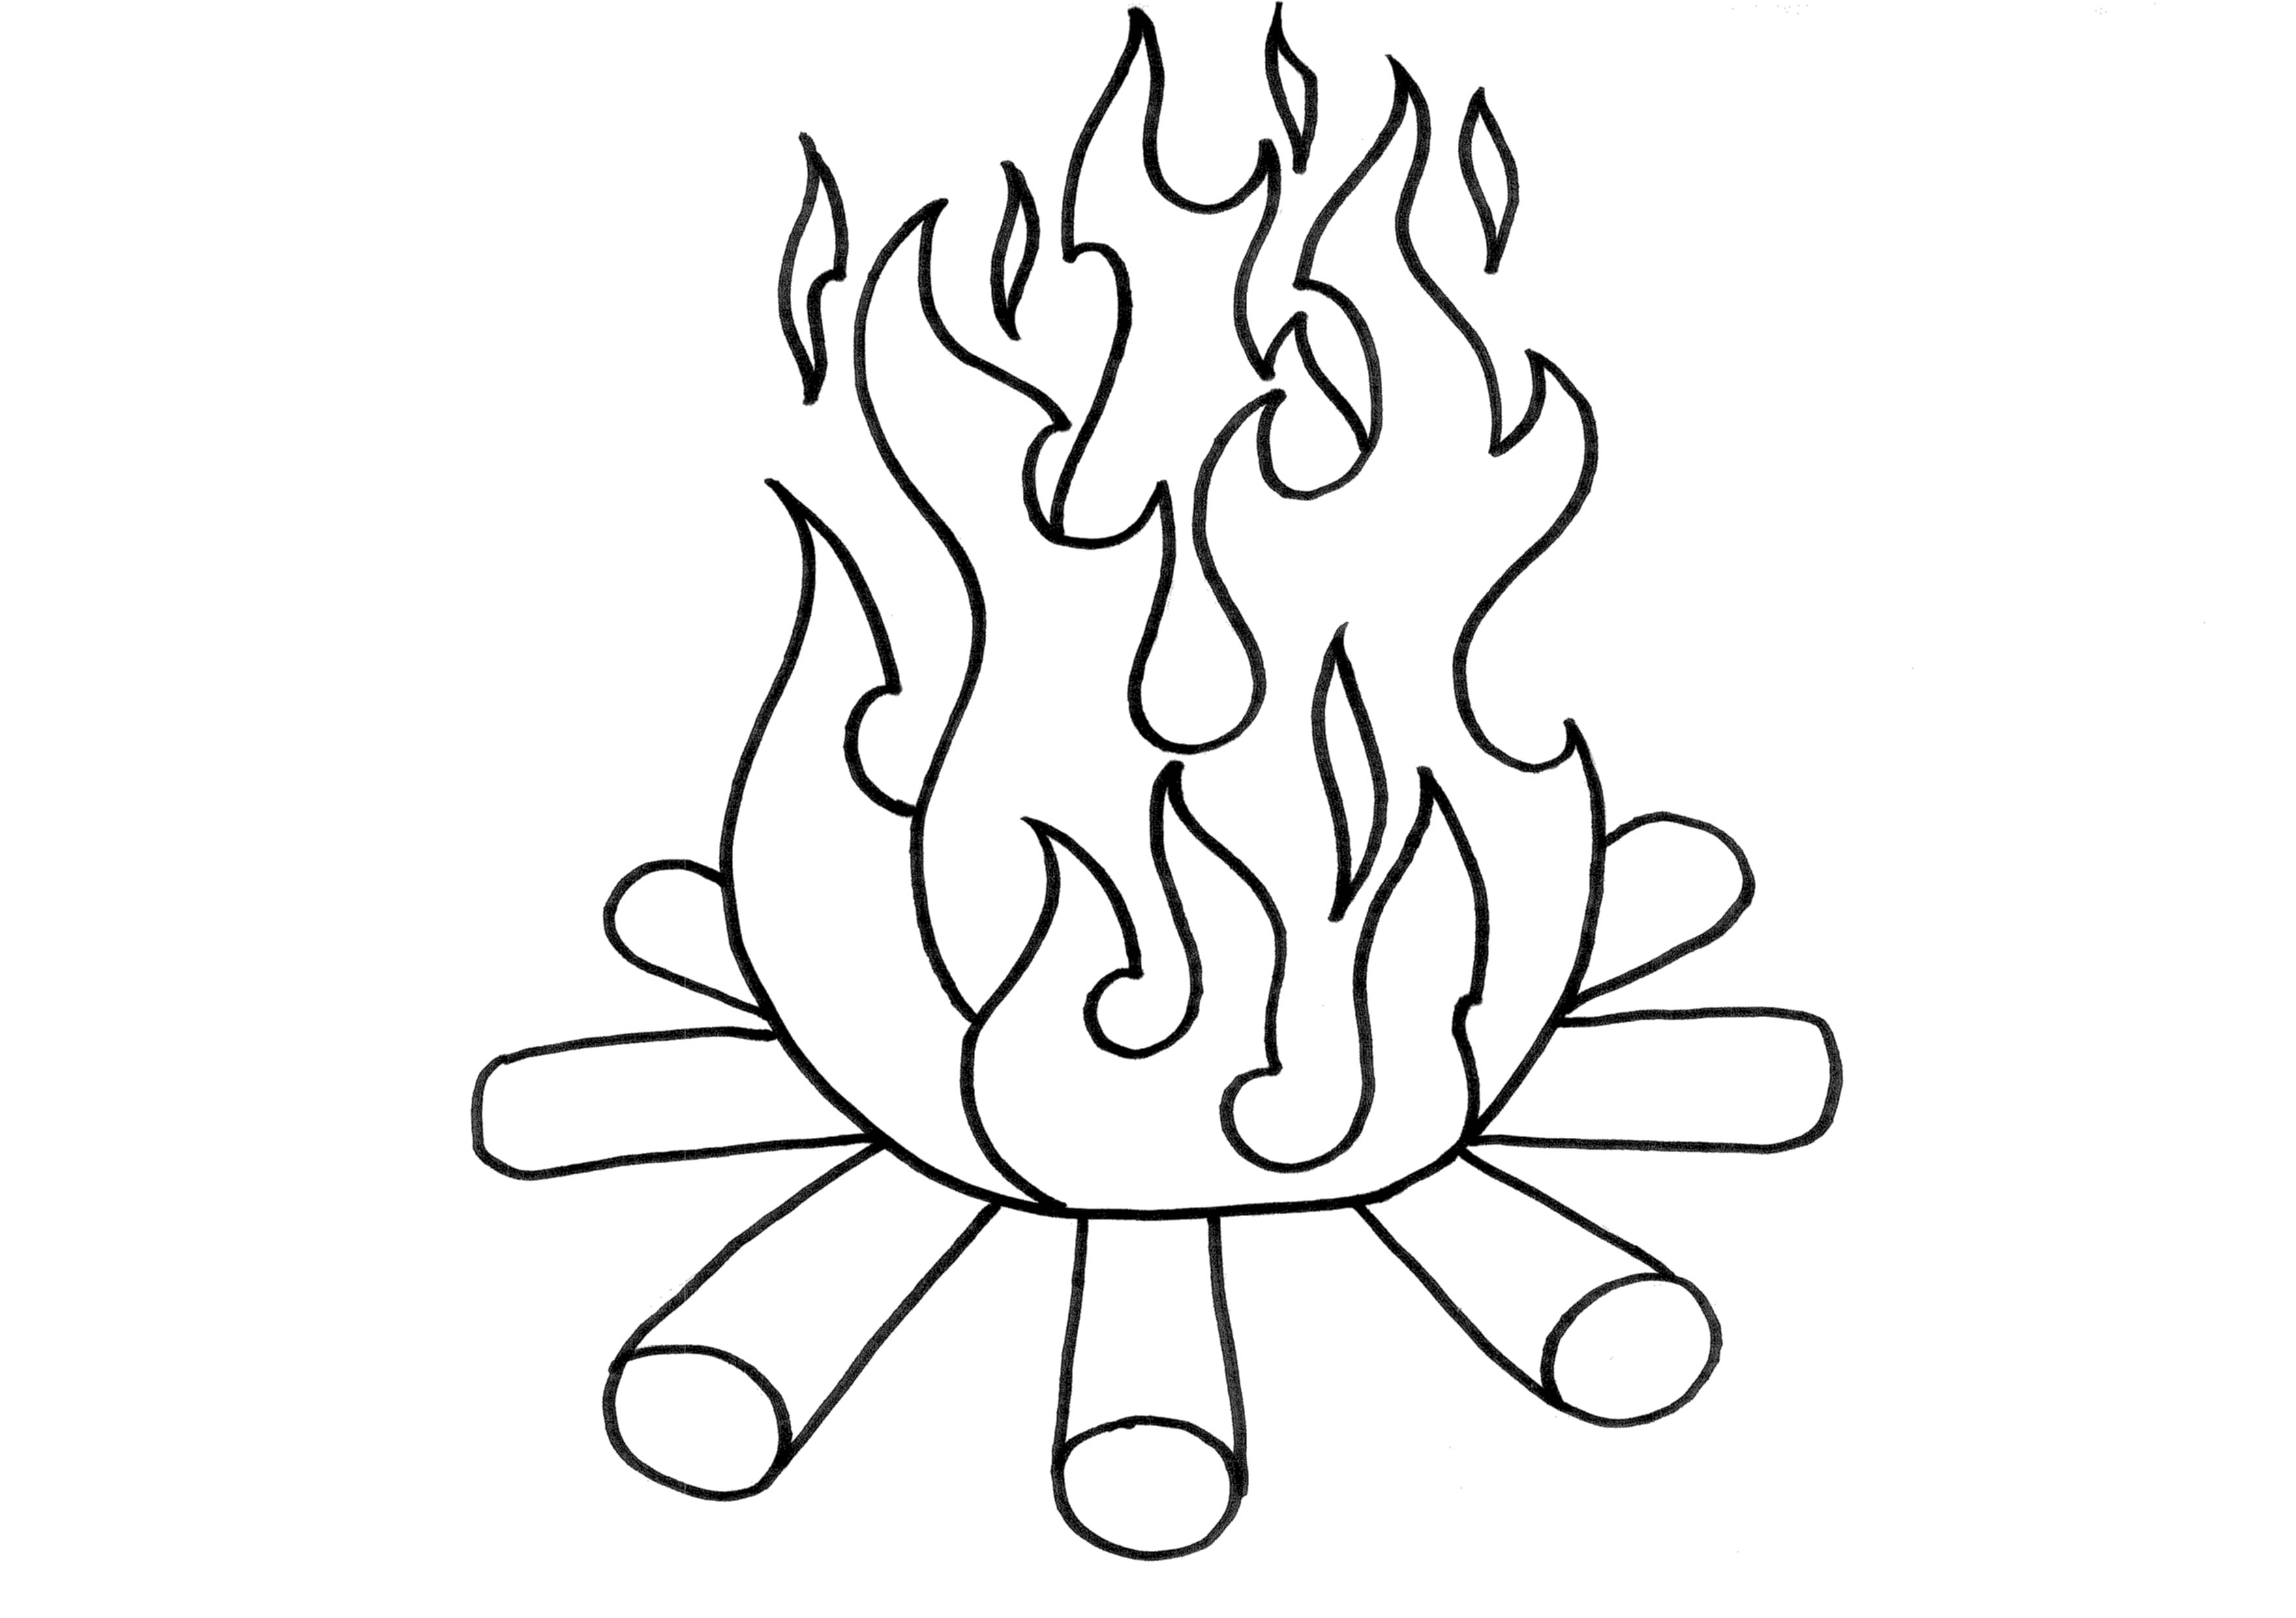 Cute Dragon Breathing Fire Coloring Page Free Printable At Pages